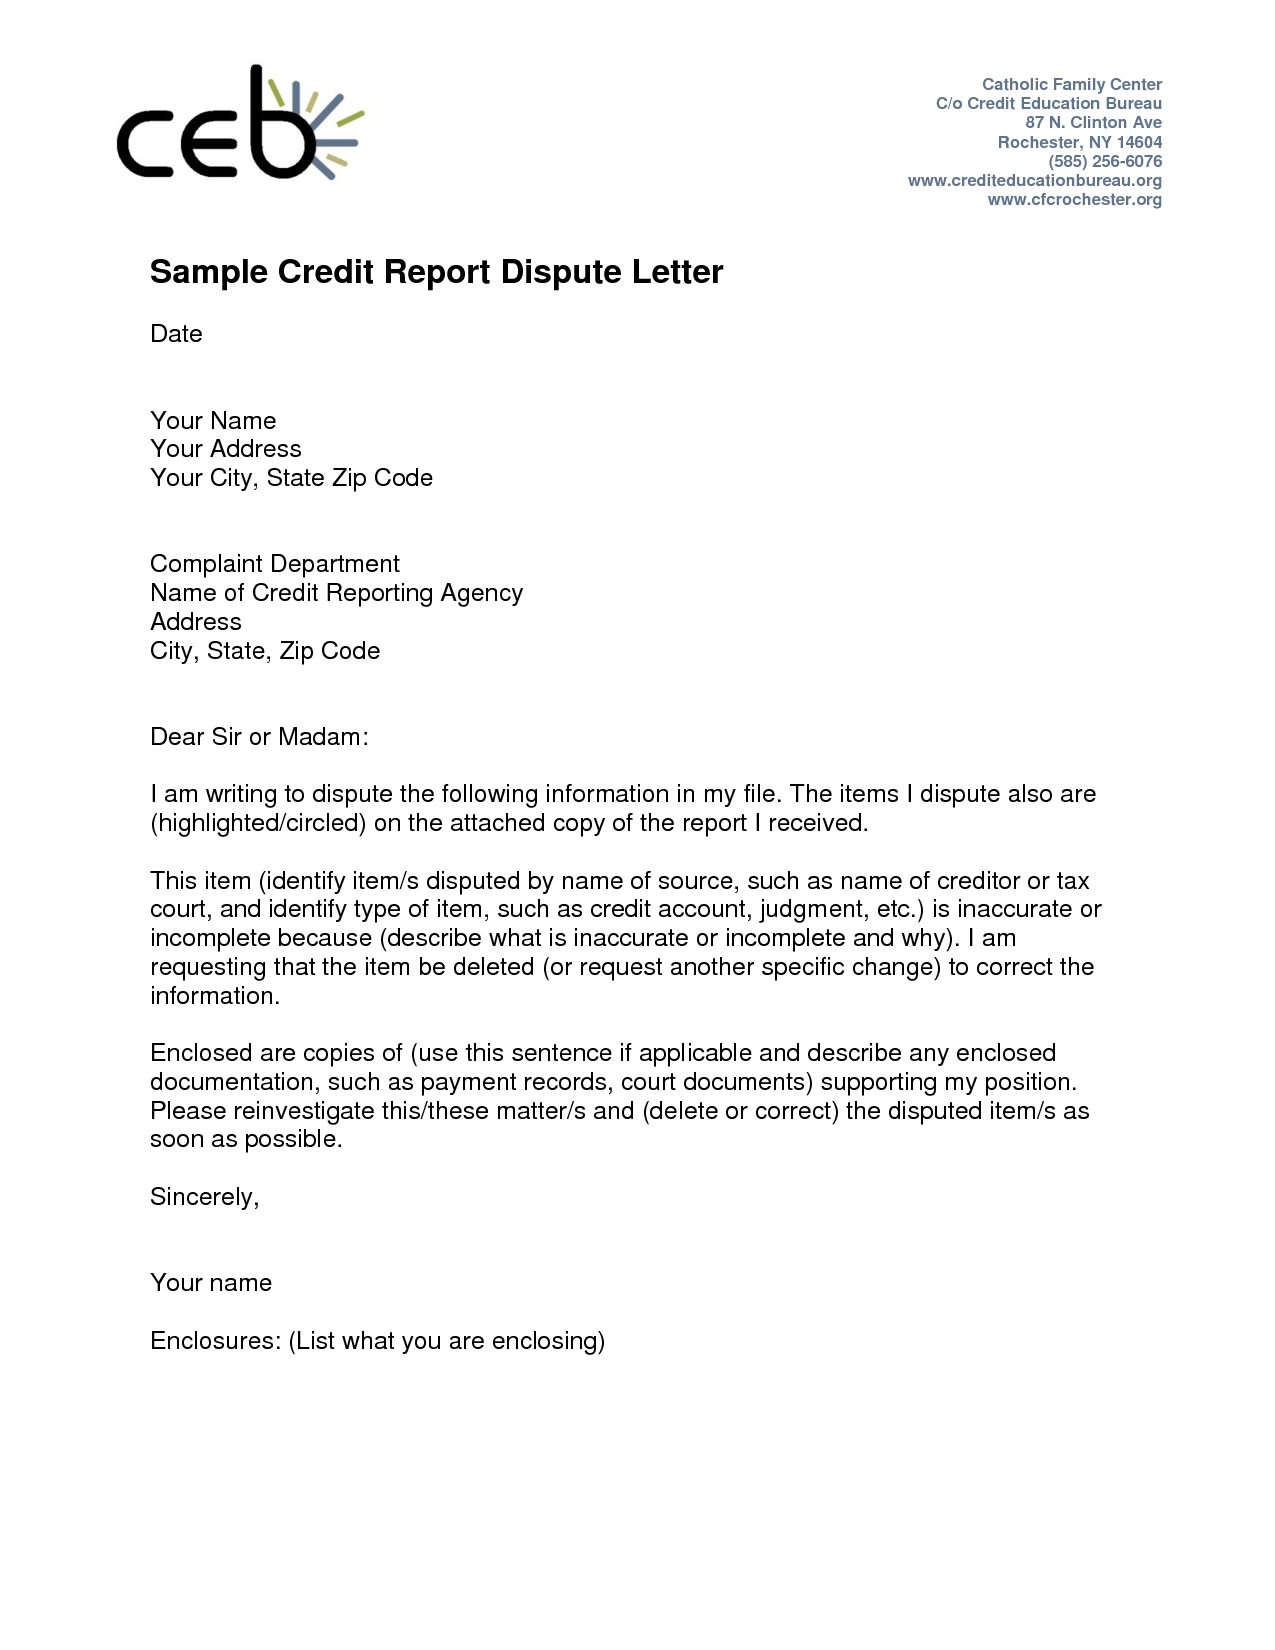 1099 Correction Letter Template - Credit Dispute Letter Templates Acurnamedia